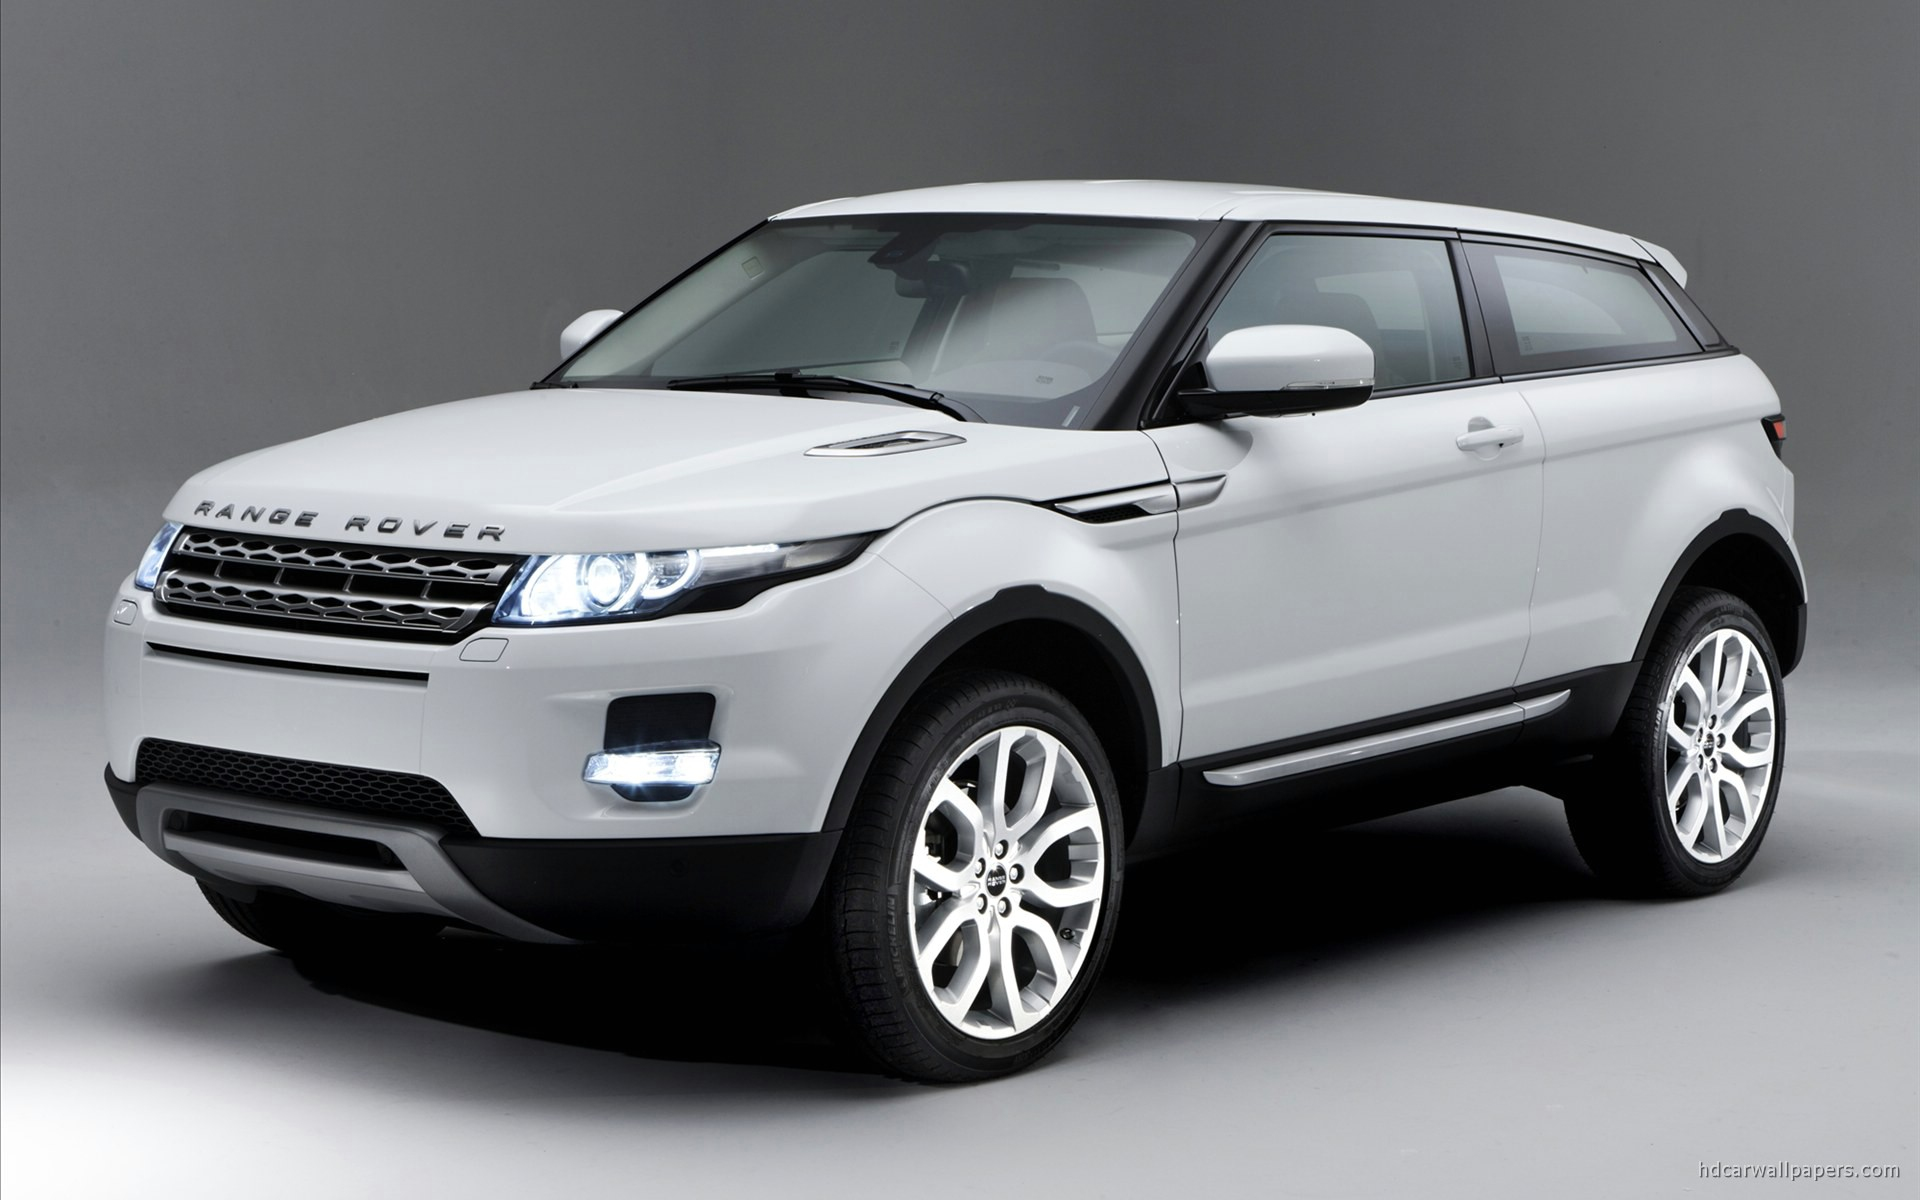 2011 range rover evoque 5 wallpaper hd car wallpapers id 1691. Black Bedroom Furniture Sets. Home Design Ideas